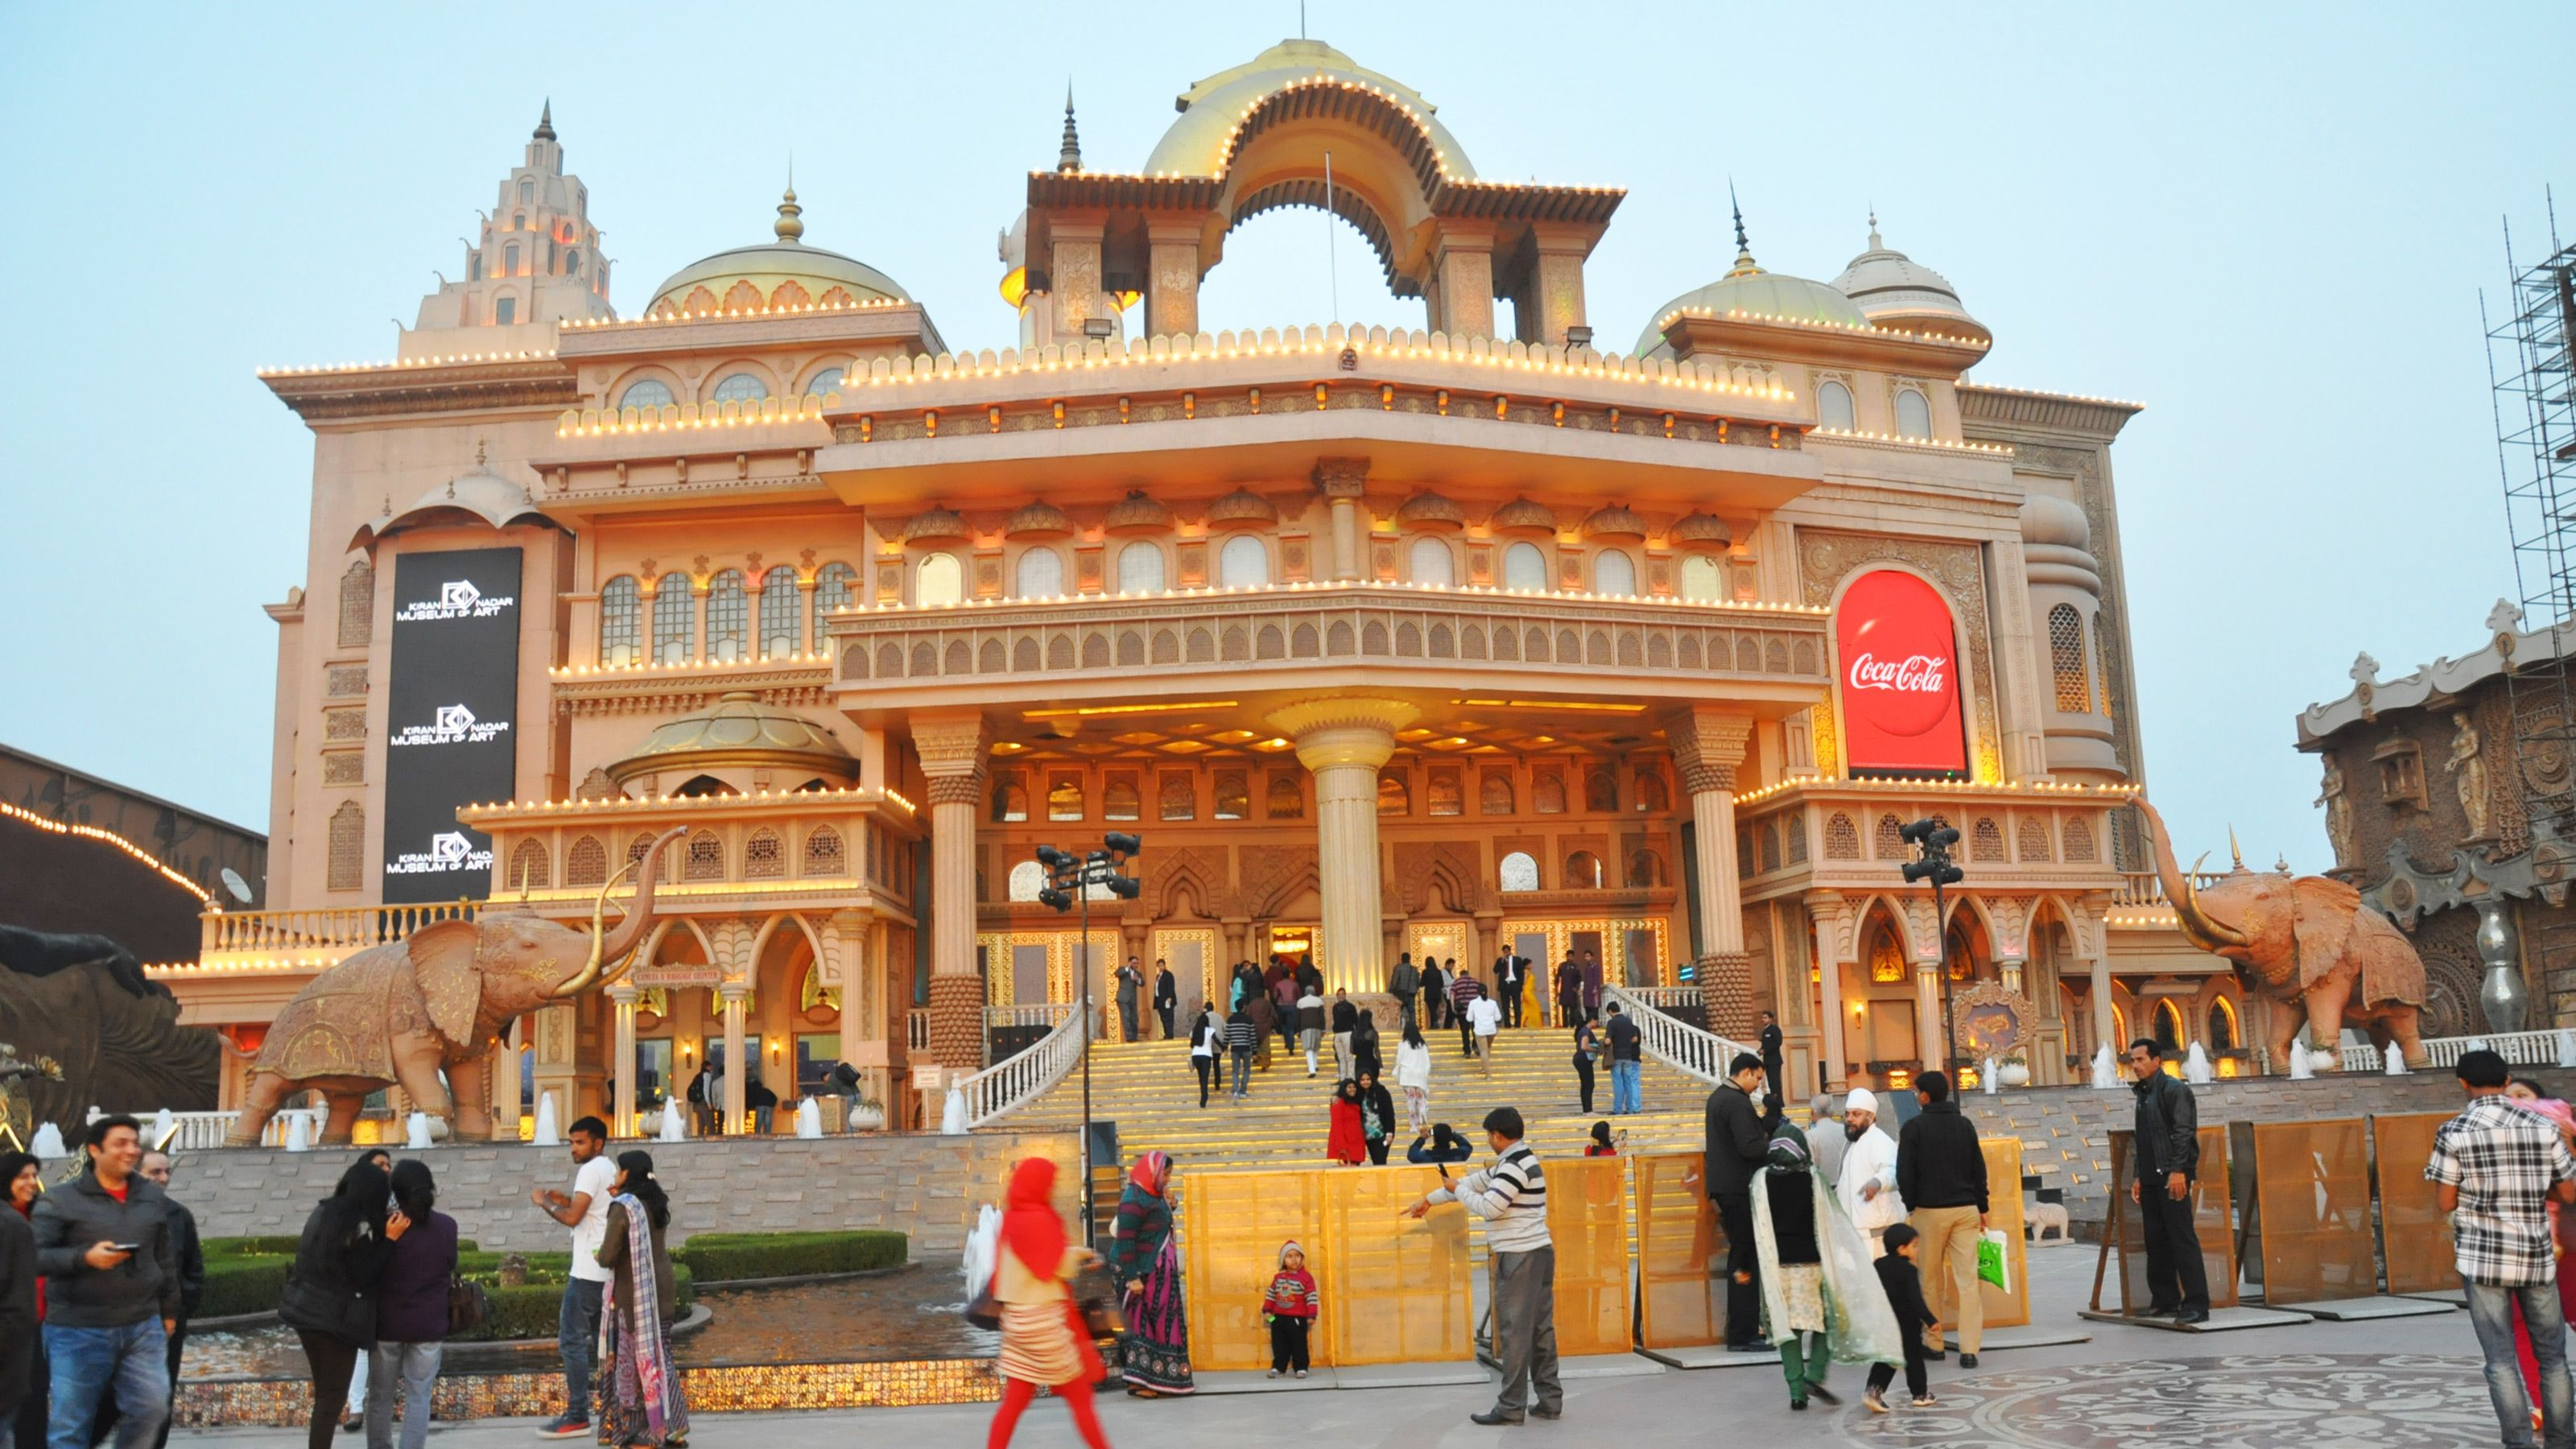 Exterior of the Kingdom of Dreams theater